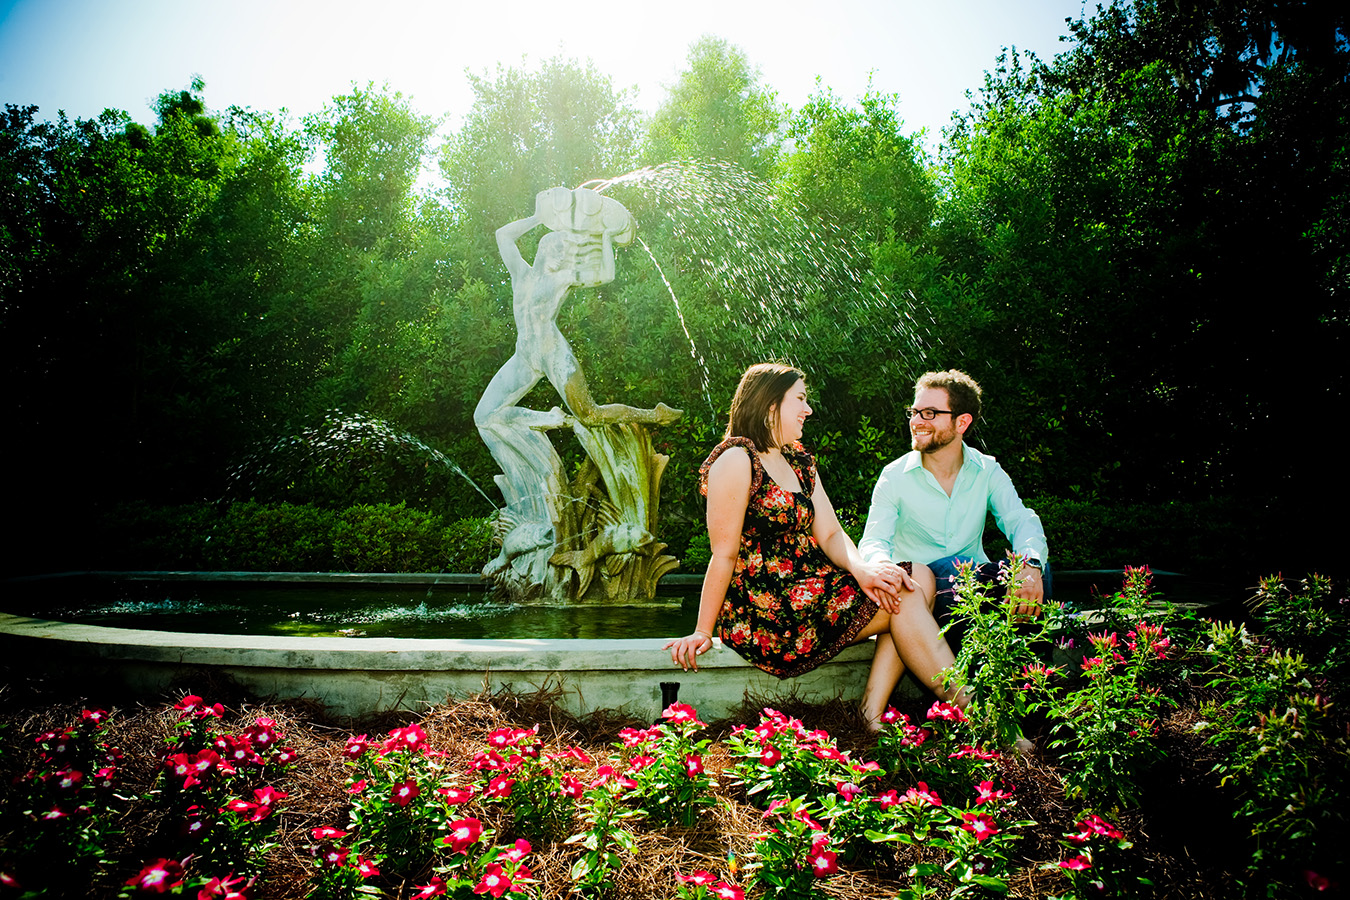 Art Deco fountains in City Park's gardens | Photo by Jessica the Photographer